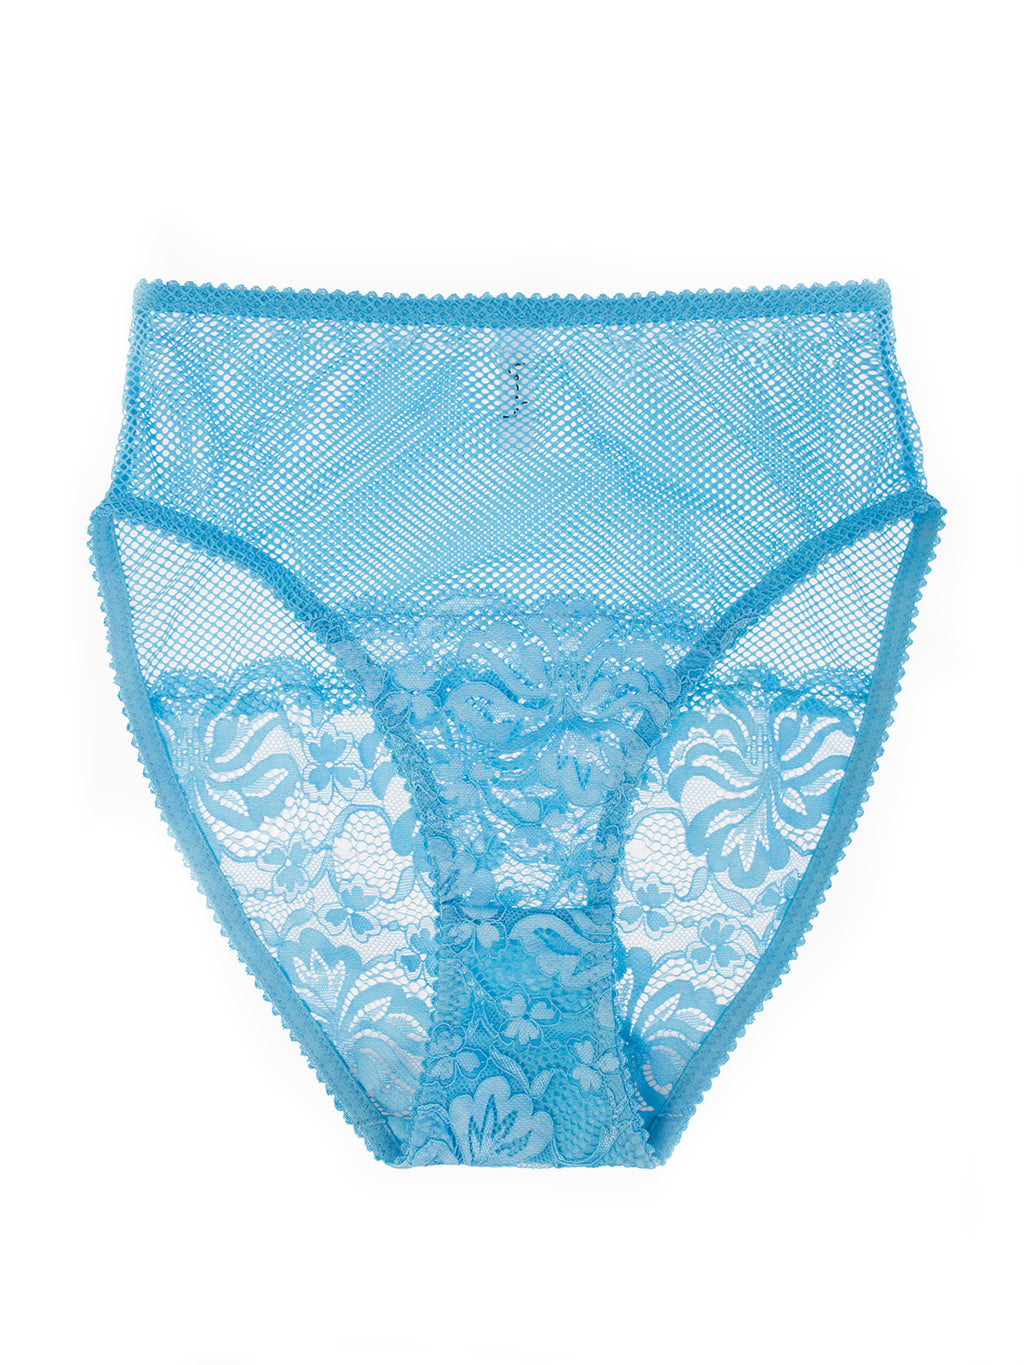 Lena High-Waist Underwear in Topaz | Lonely lingerie at Finding Rosie